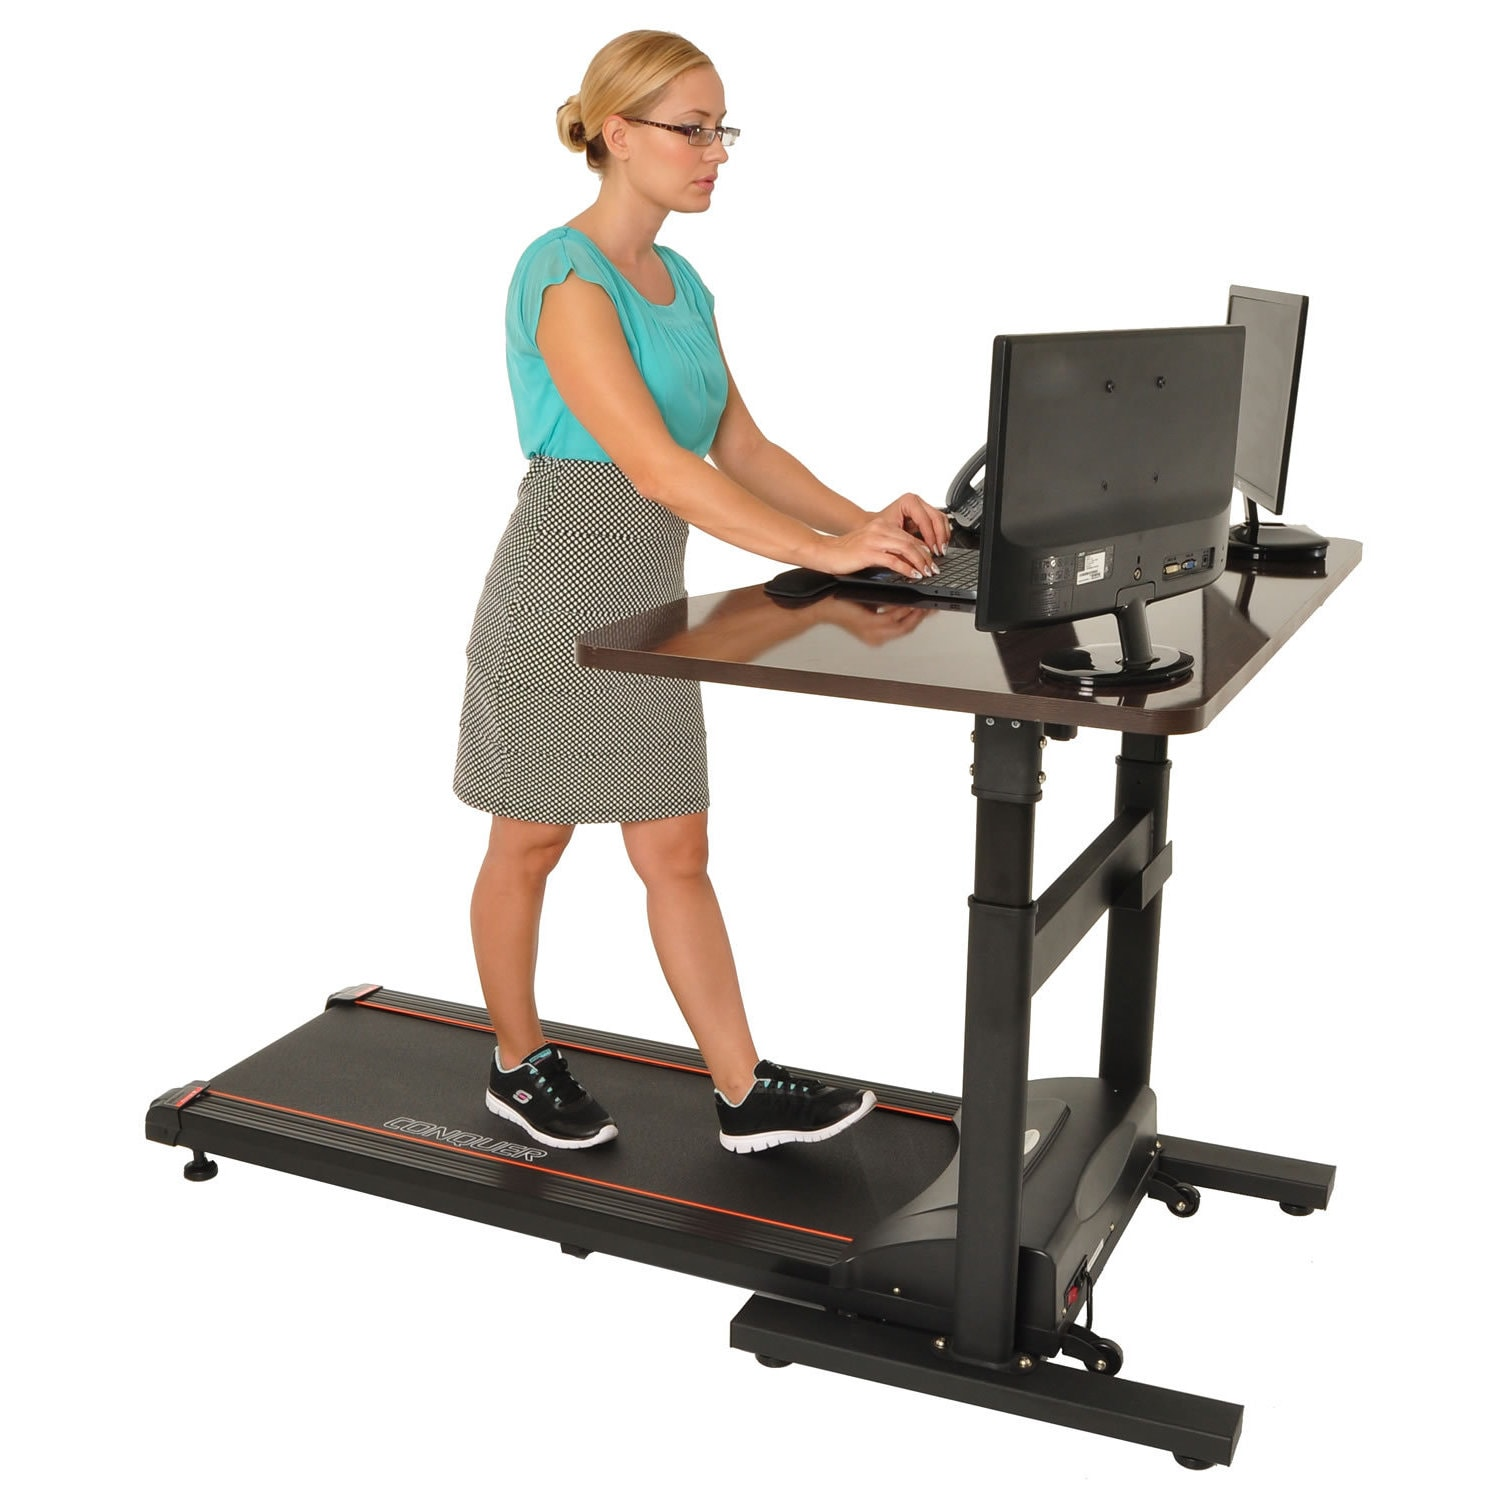 office best collection the desk reviews standing treadmills under in ergonomics city on this spent with splendid desks treadmill